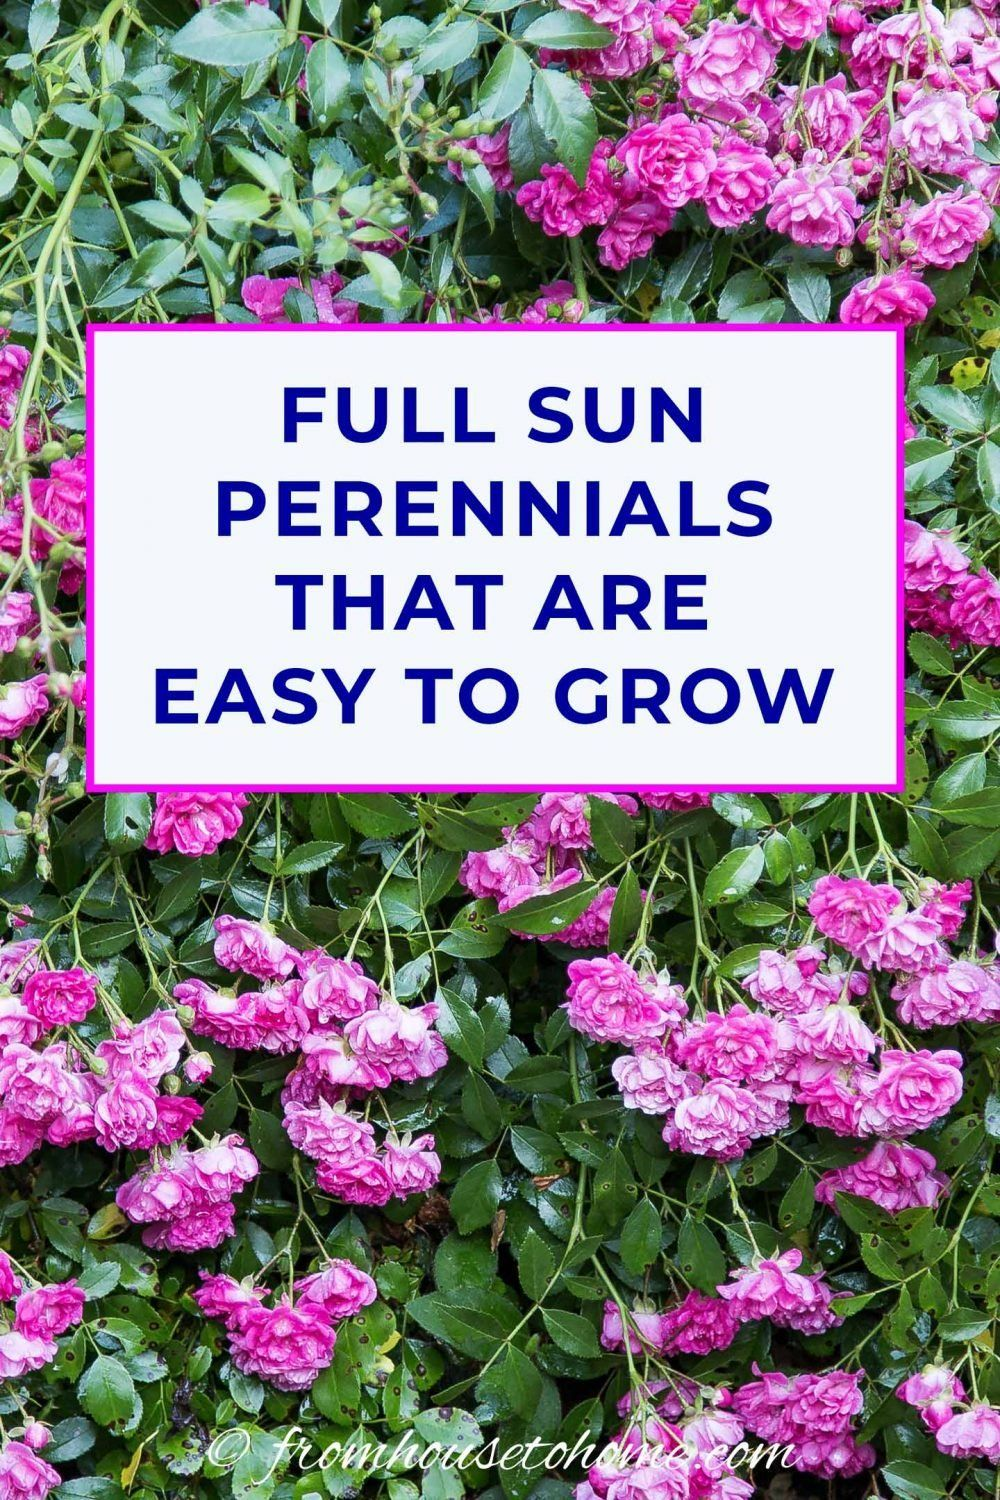 Full Sun Perennials 15 Beautiful Low Maintenance Plants That Thrive In The Sun Gardening From House To Home In 2020 Full Sun Perennials Sun Perennials Easy Care Plants